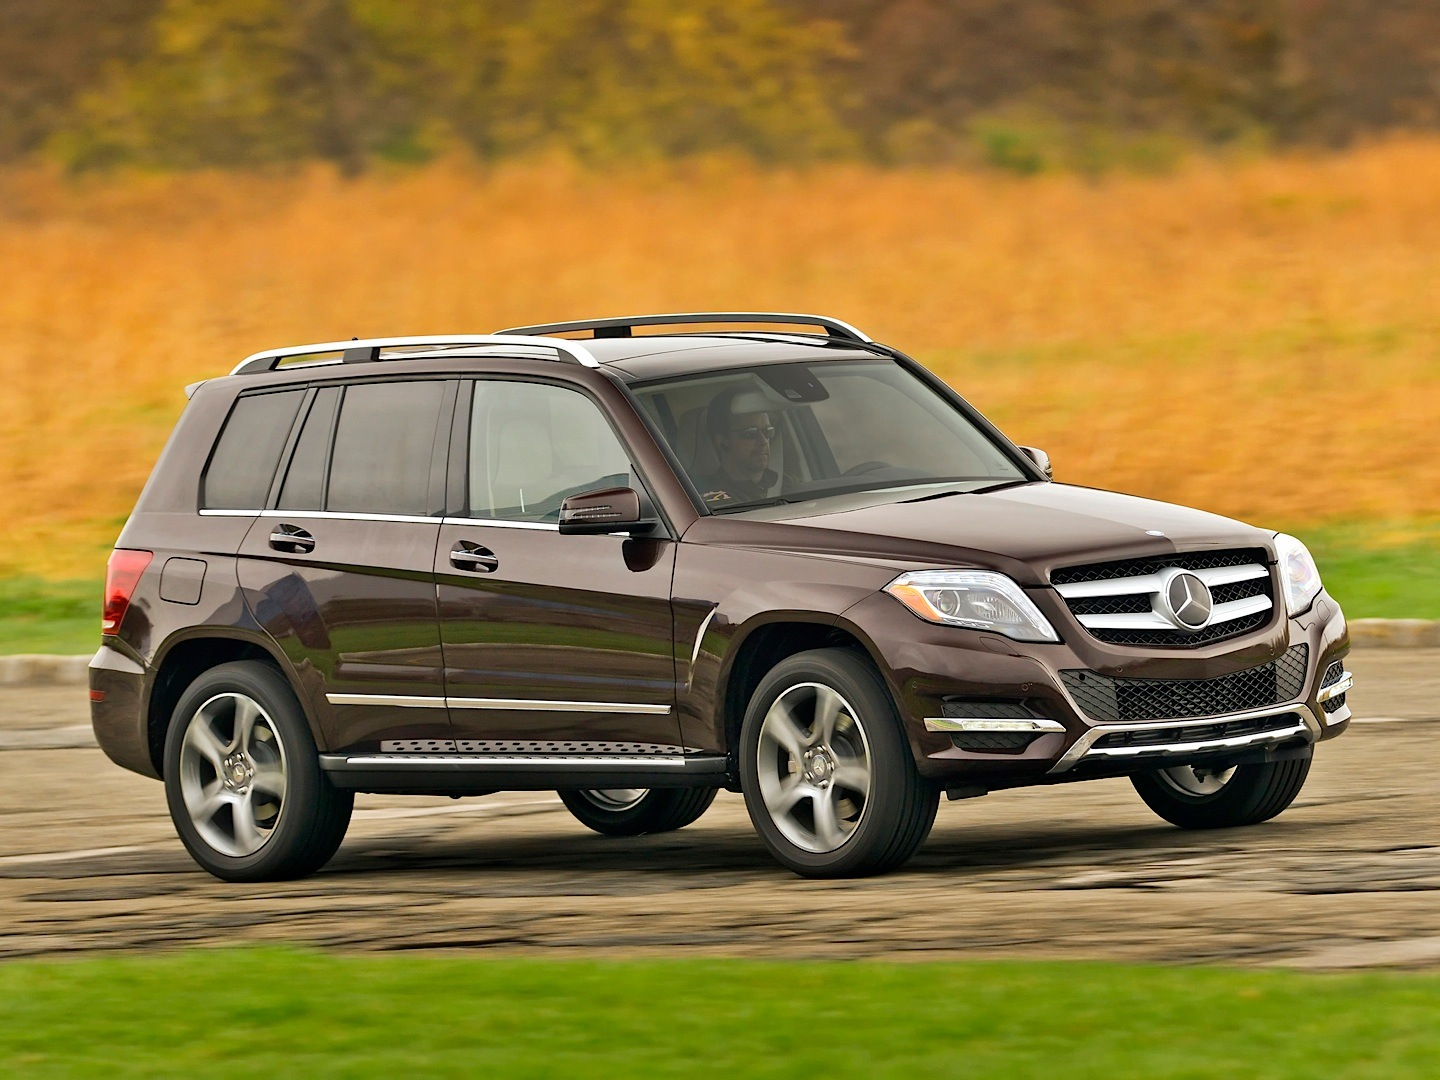 Mercedes Benz Glk 250 Bluetec Vs Audi Q3 3 0 Tdi